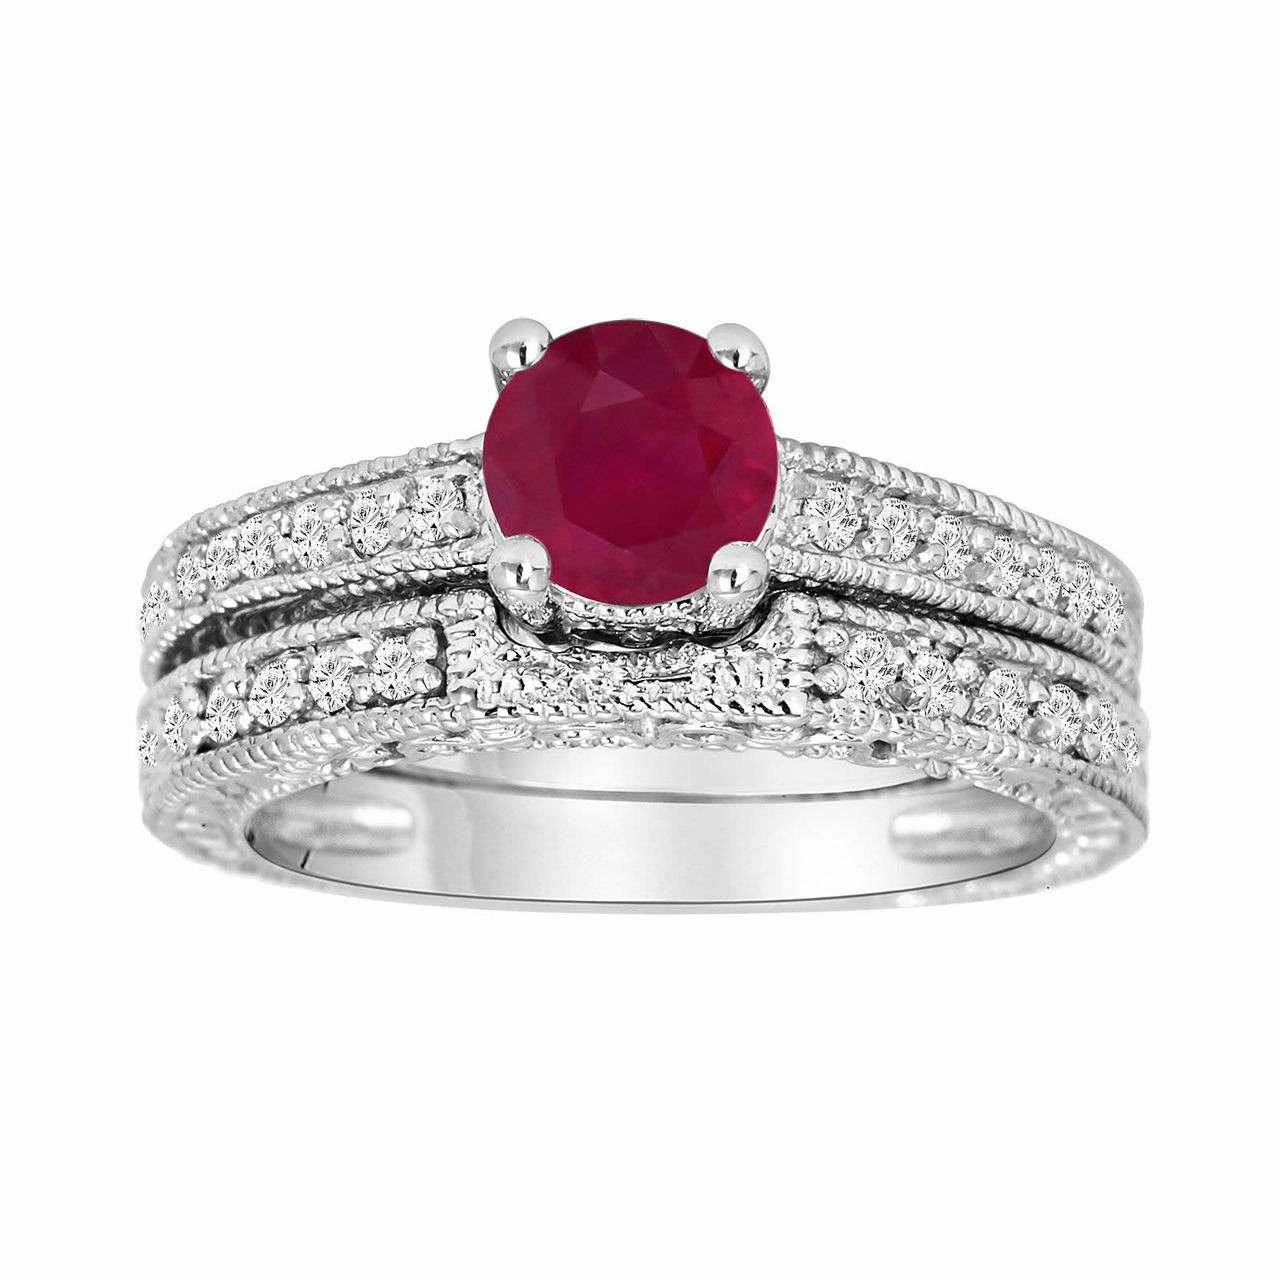 Handcrafted In The Usa: Ruby Wedding Anniversary Bands At Reisefeber.org